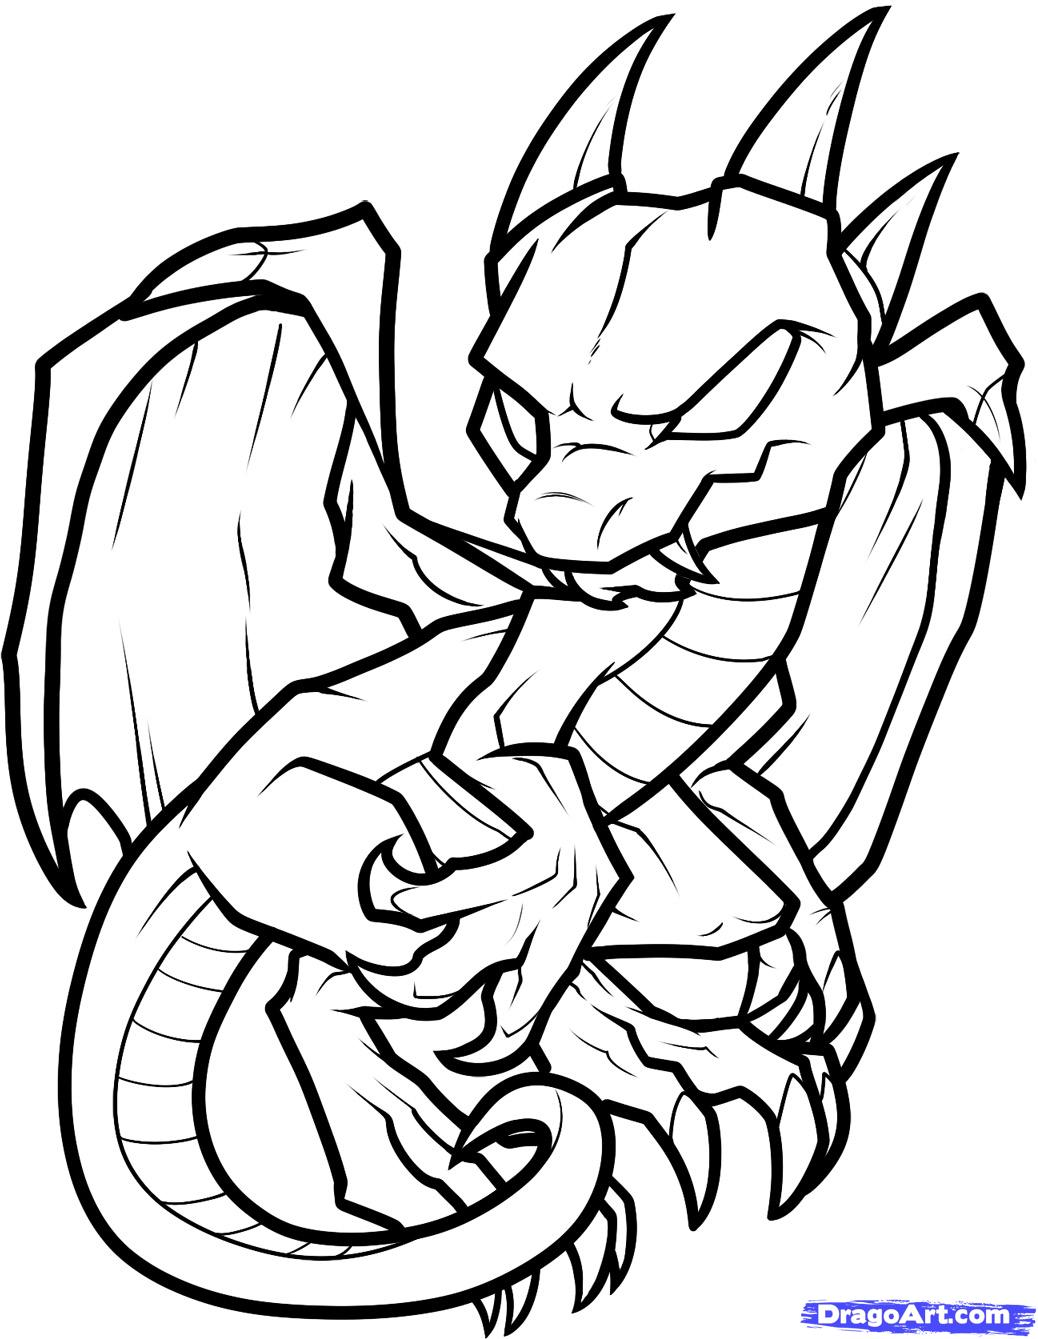 Anime Dragon Drawing At Getdrawings Com Free For Personal Use